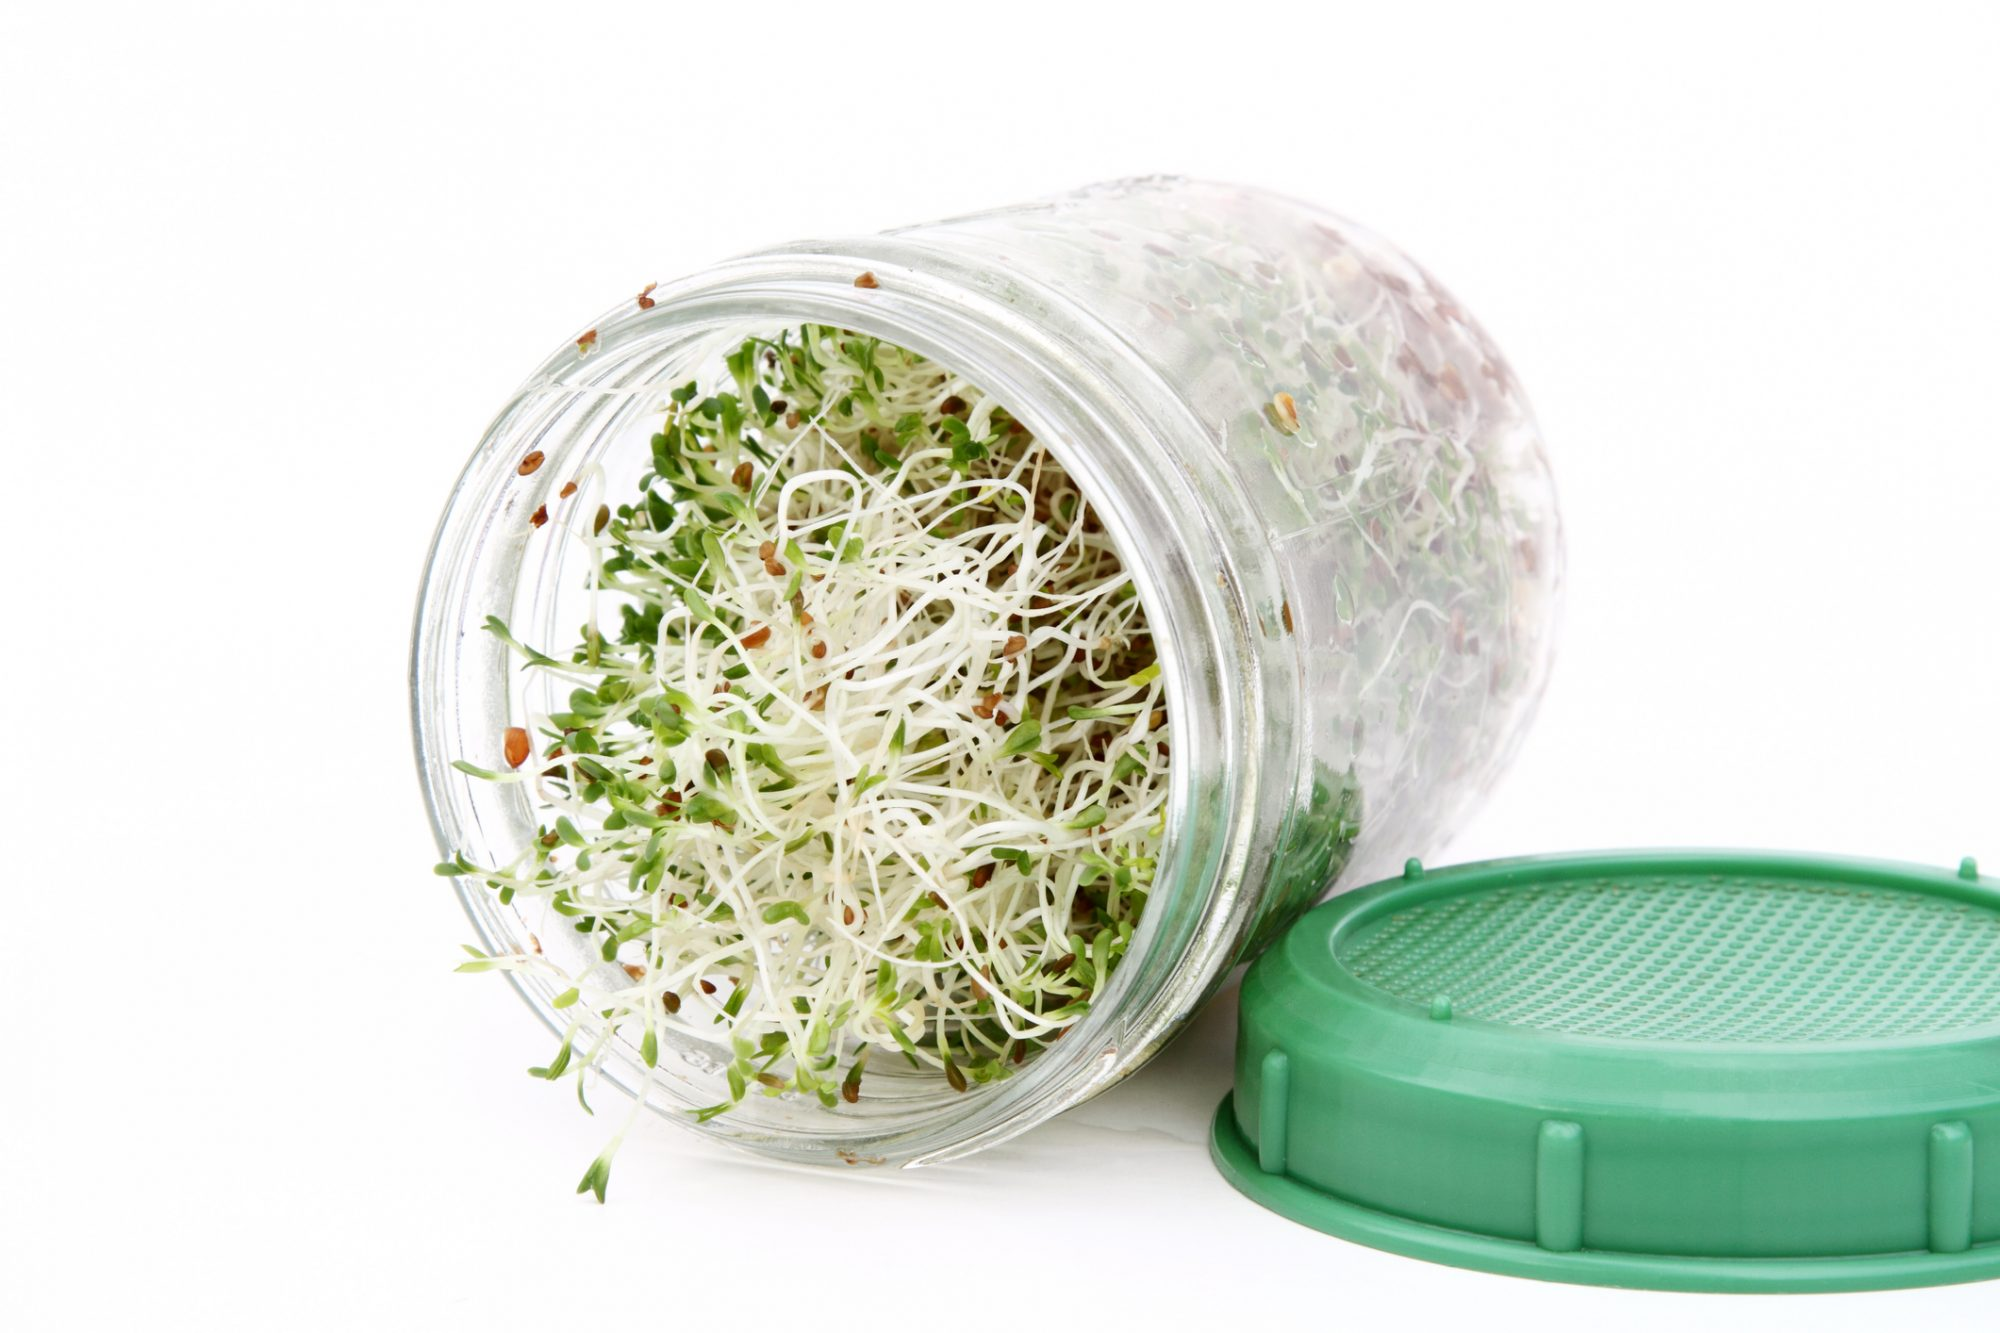 Alfalfa Sprouts Growing in Jar